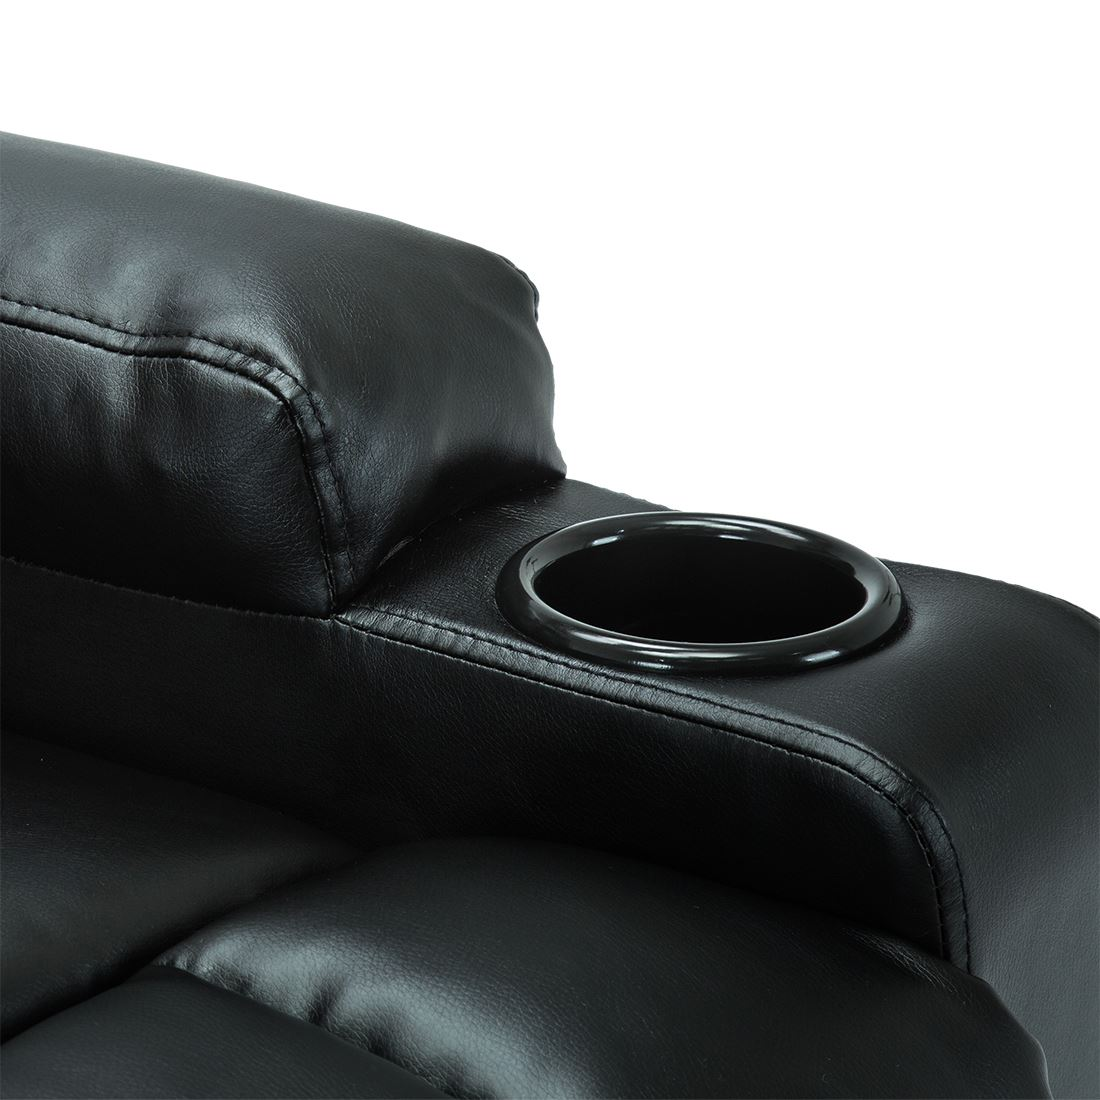 STUDIO-LEATHER-RECLINER-w-DRINK-HOLDERS-ARMCHAIR-SOFA-CHAIR-CINEMA-GAMING thumbnail 8